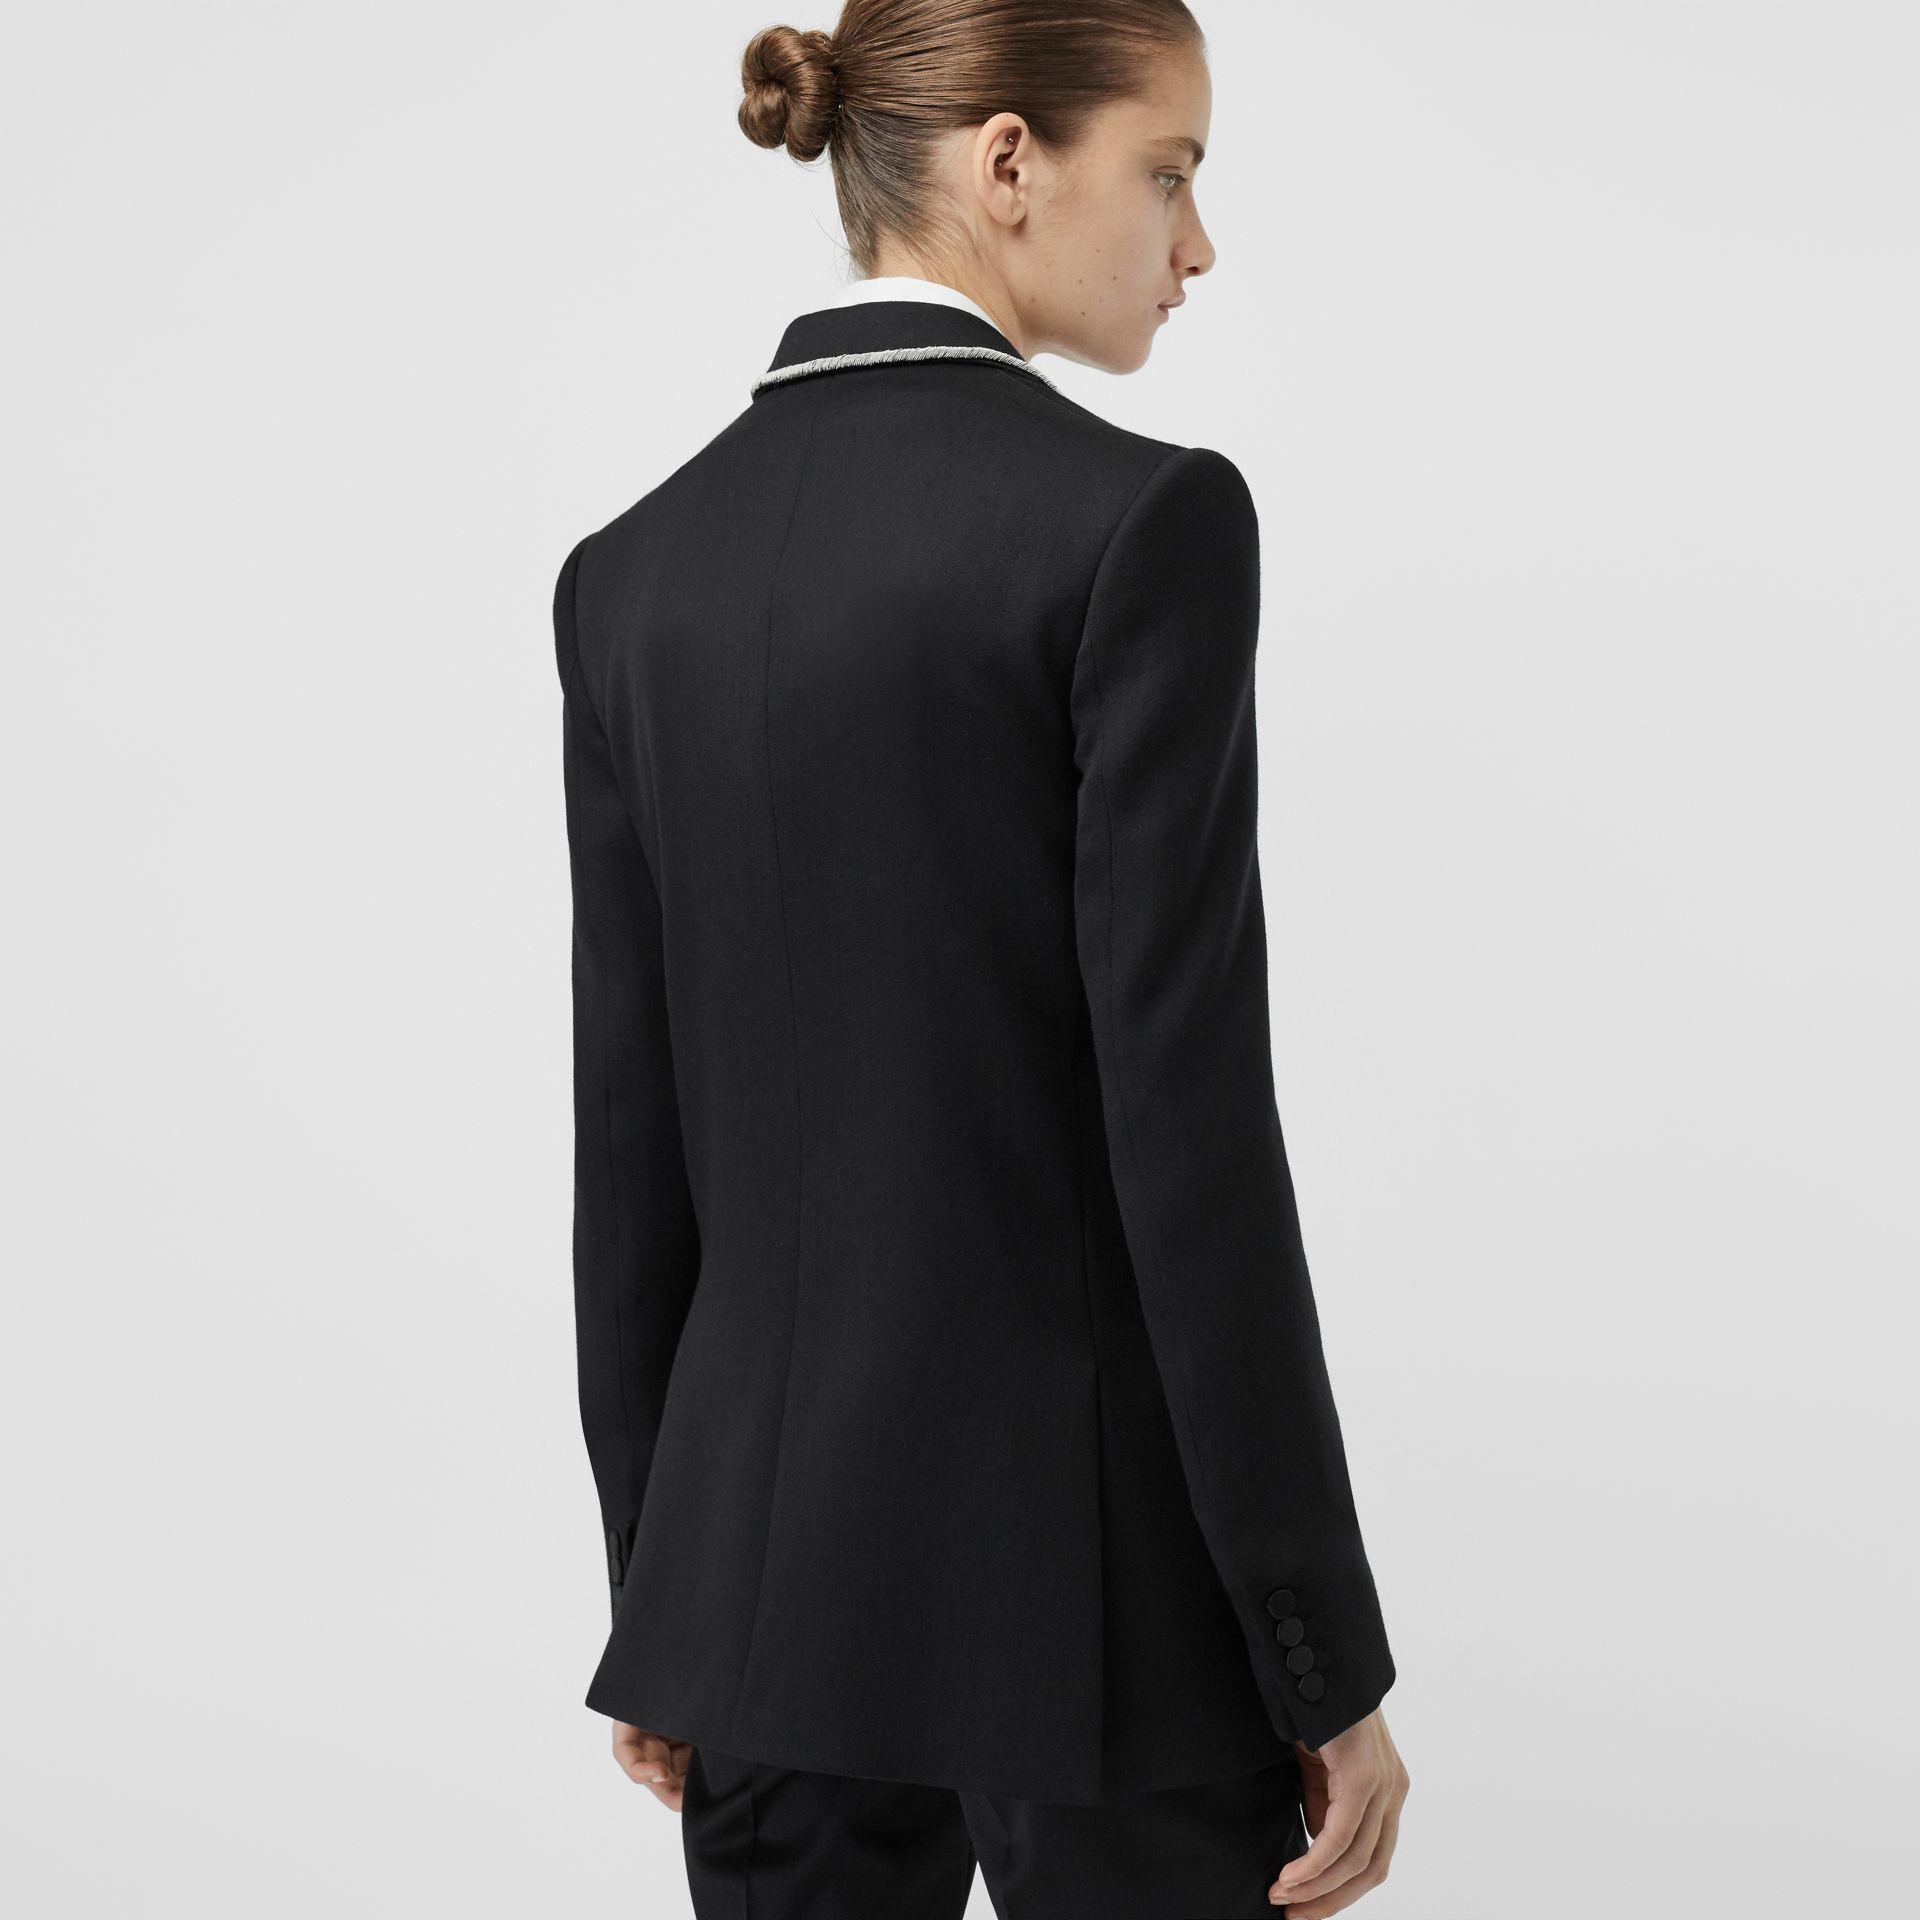 Bullion Stretch Wool Double-breasted Jacket in Black - Women | Burberry - gallery image 2